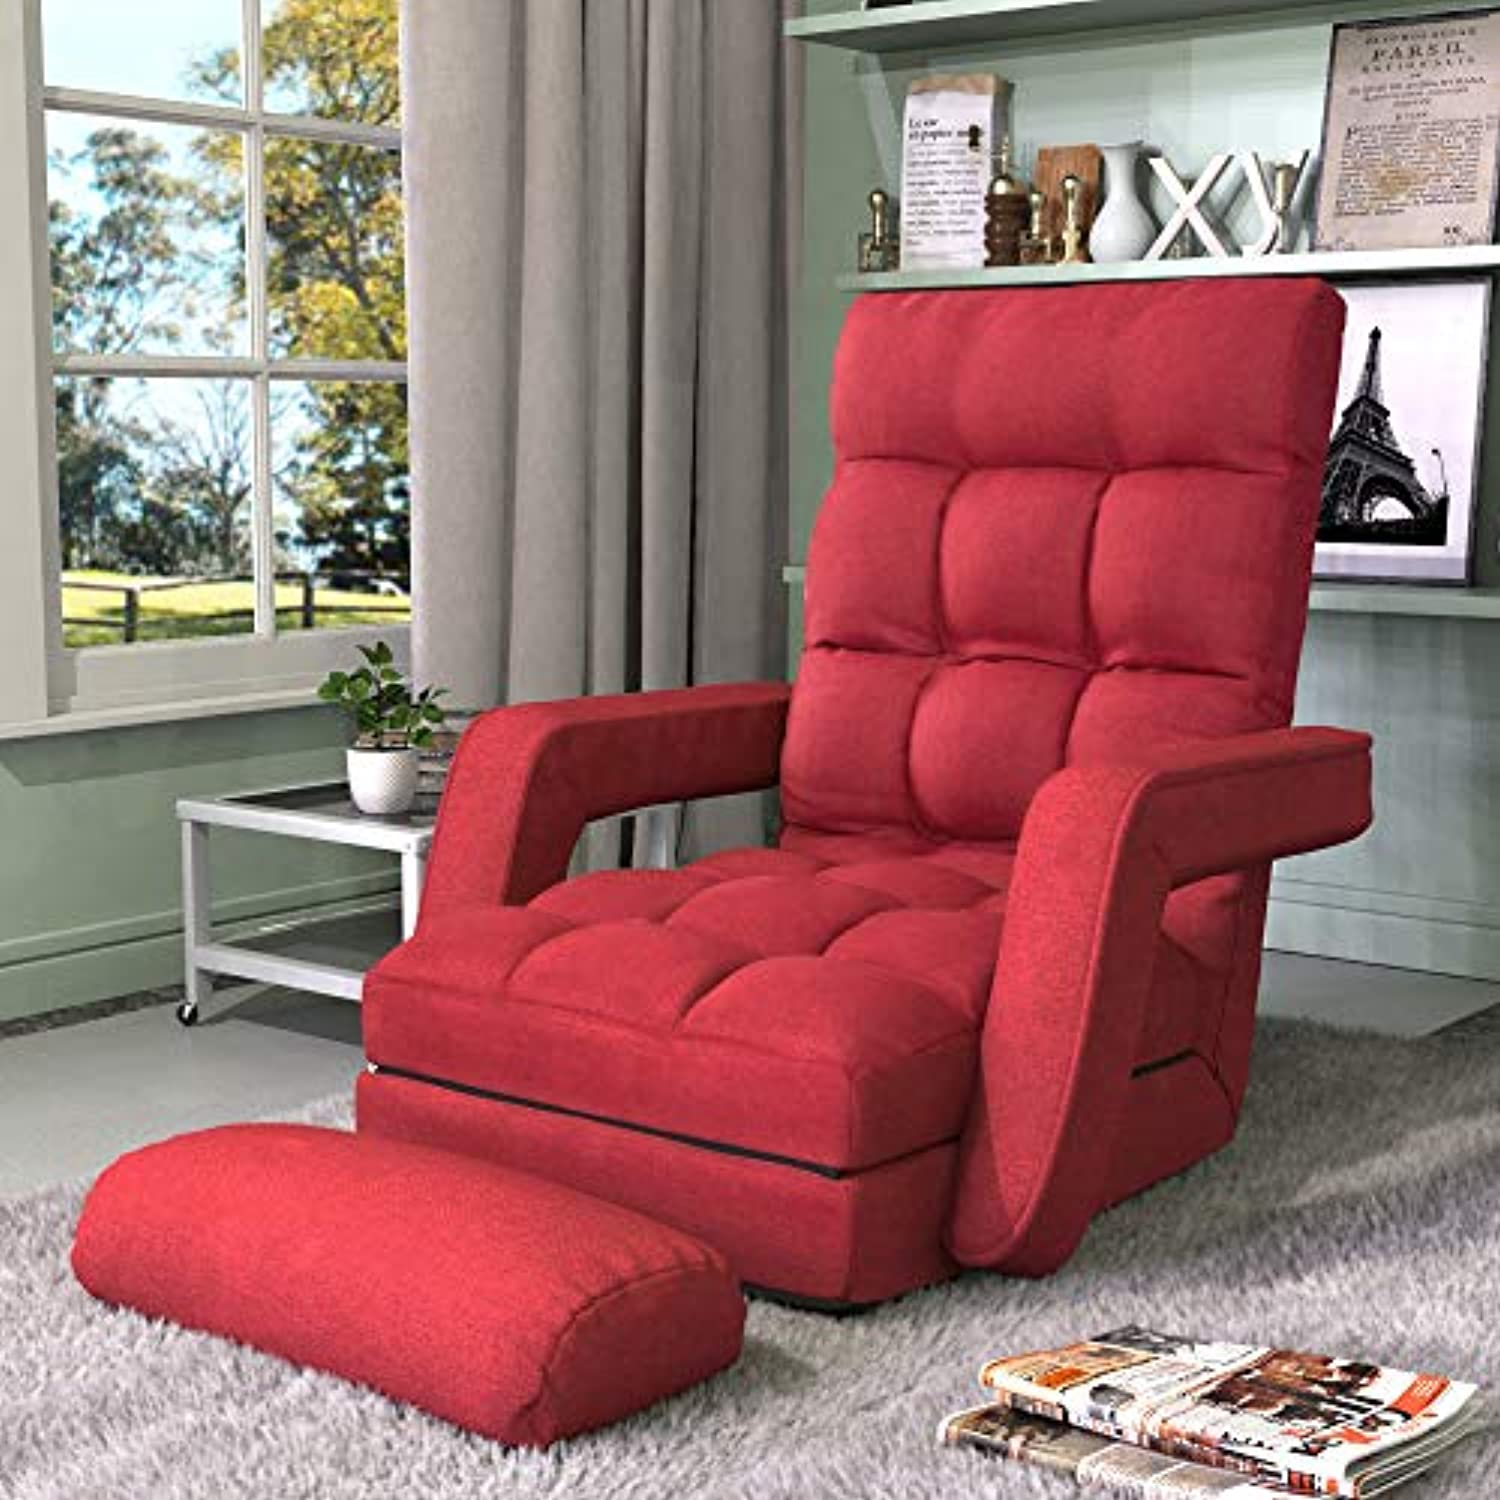 NOSGA Chaise Lounge Sofa Indoor,Folding Lazy Sofa Floor Chair Sofa 5 Position Folding Padded, Lounger Bed with Armrests a Pillow for Living Room Bedroom (Red)